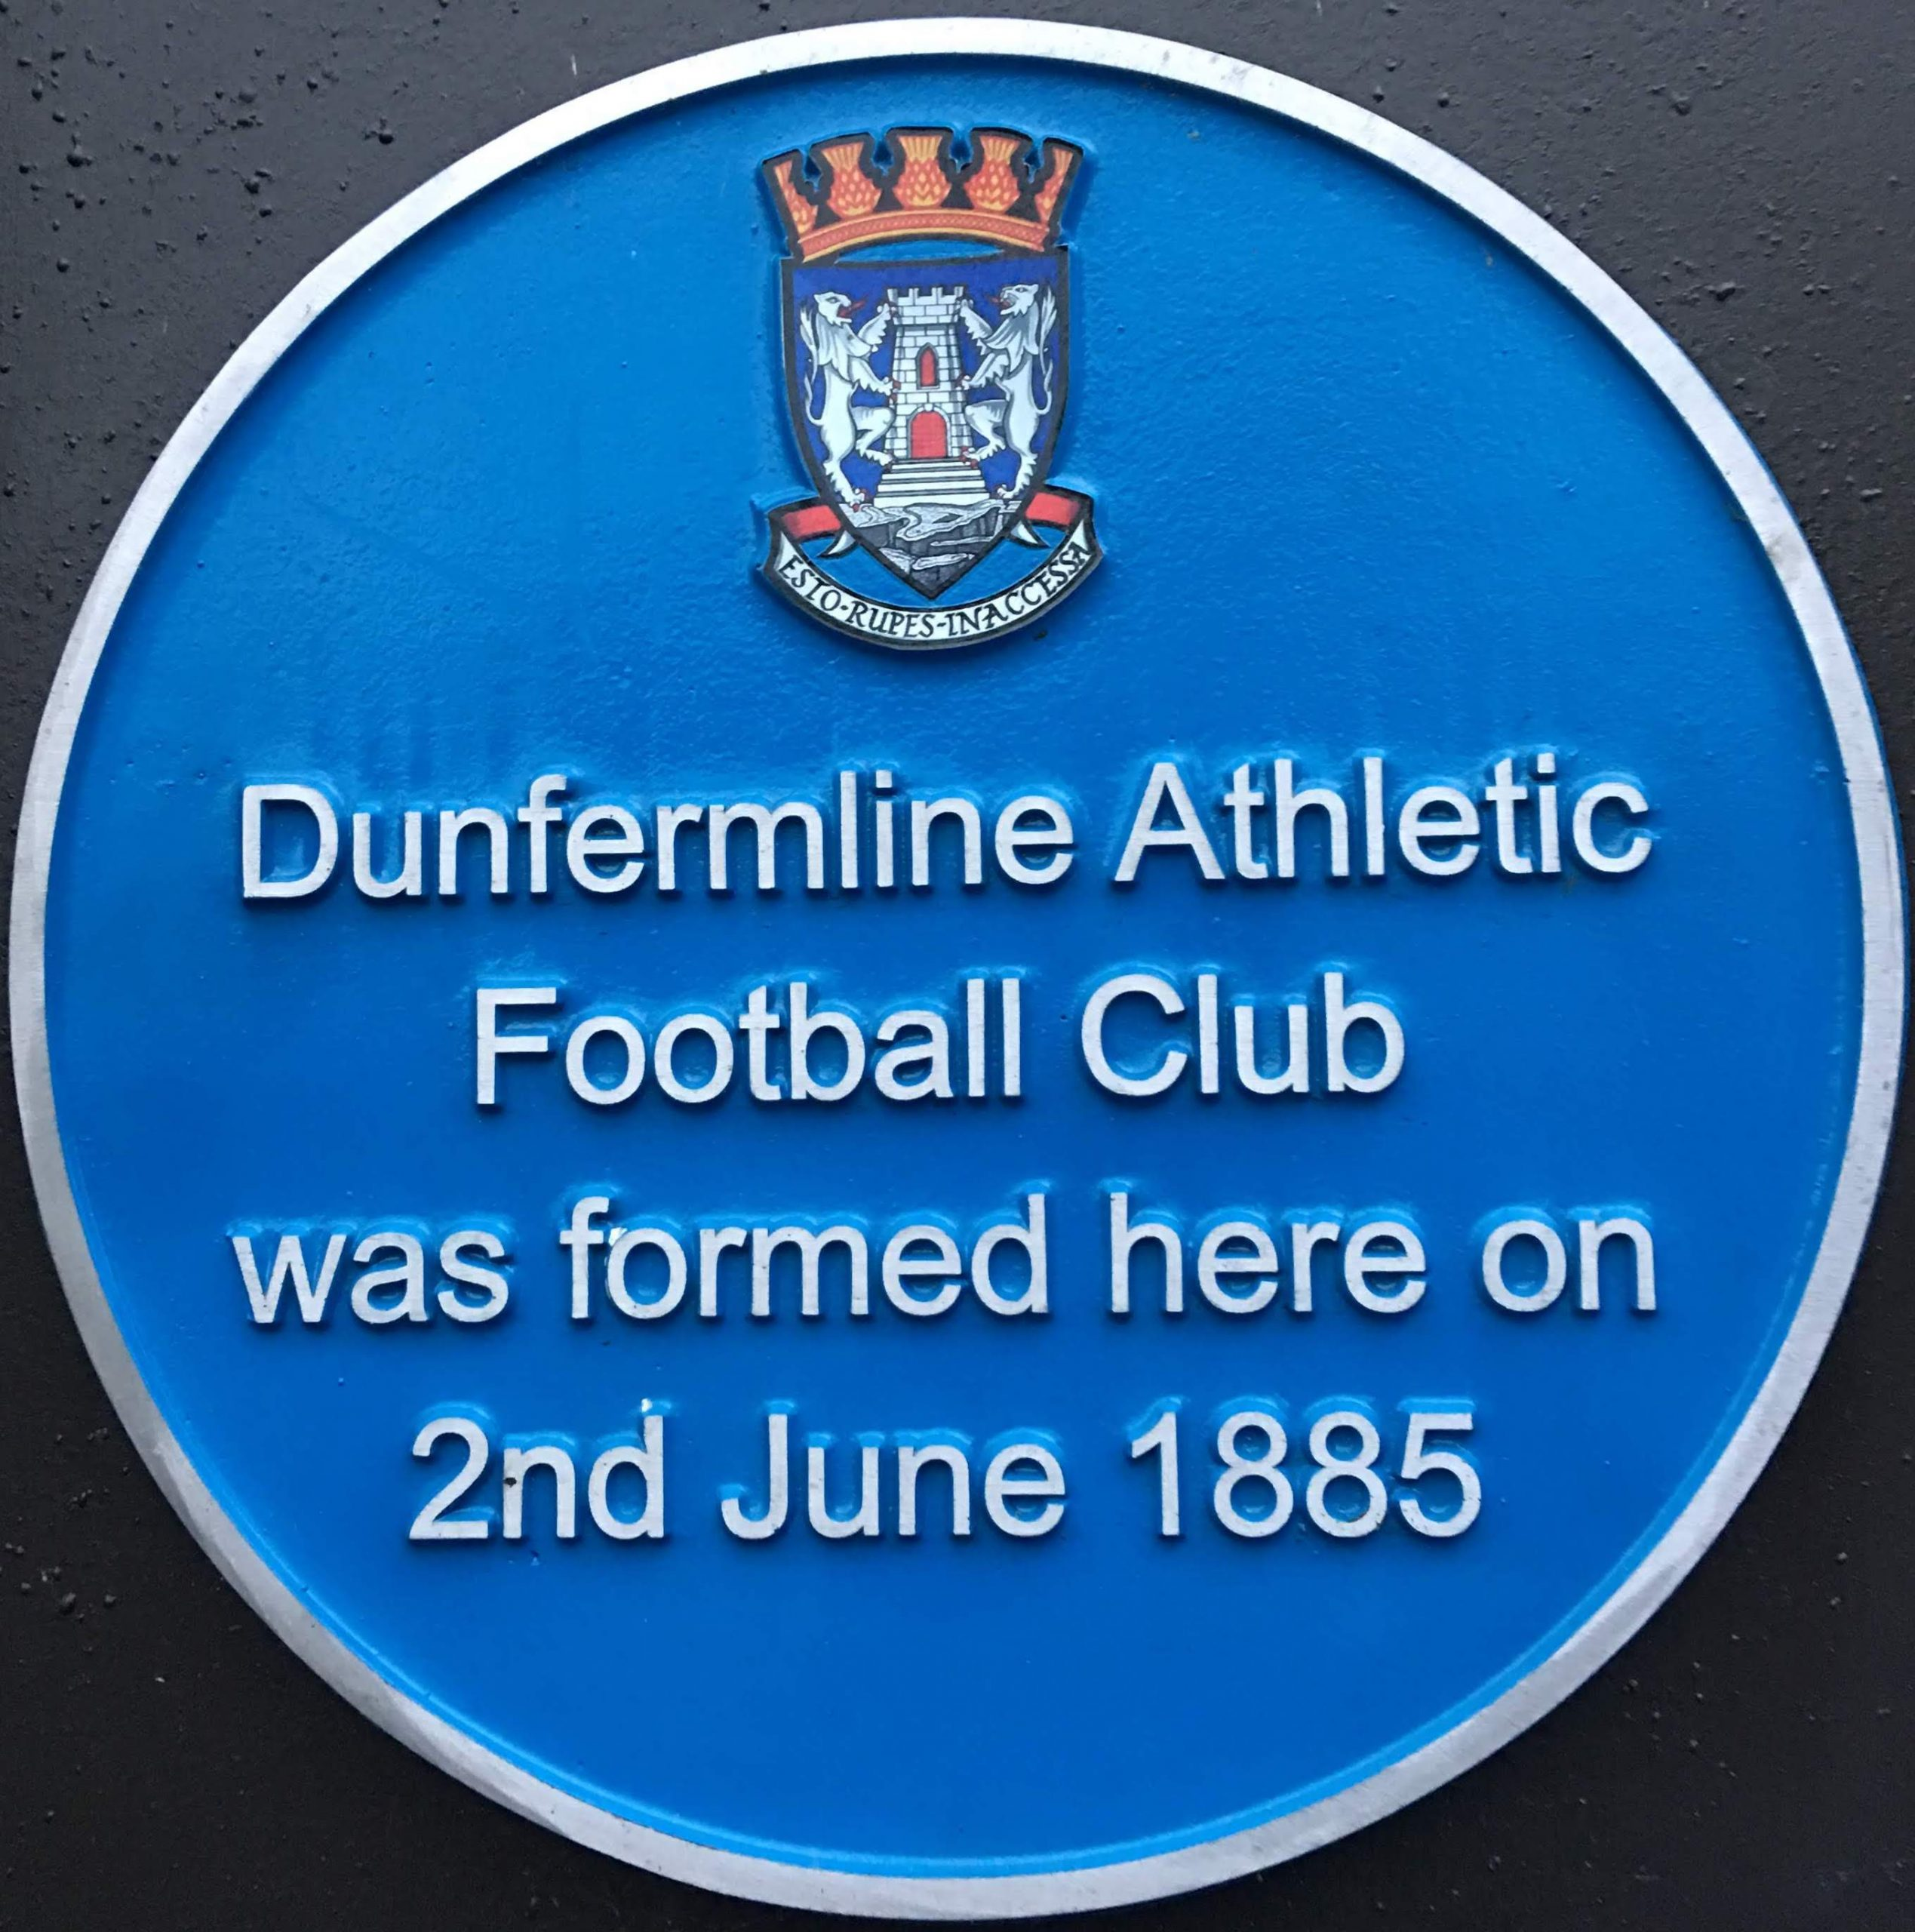 Blue plaque that says Dunfermline Athletic Football Club was formed her on 2 June 1885